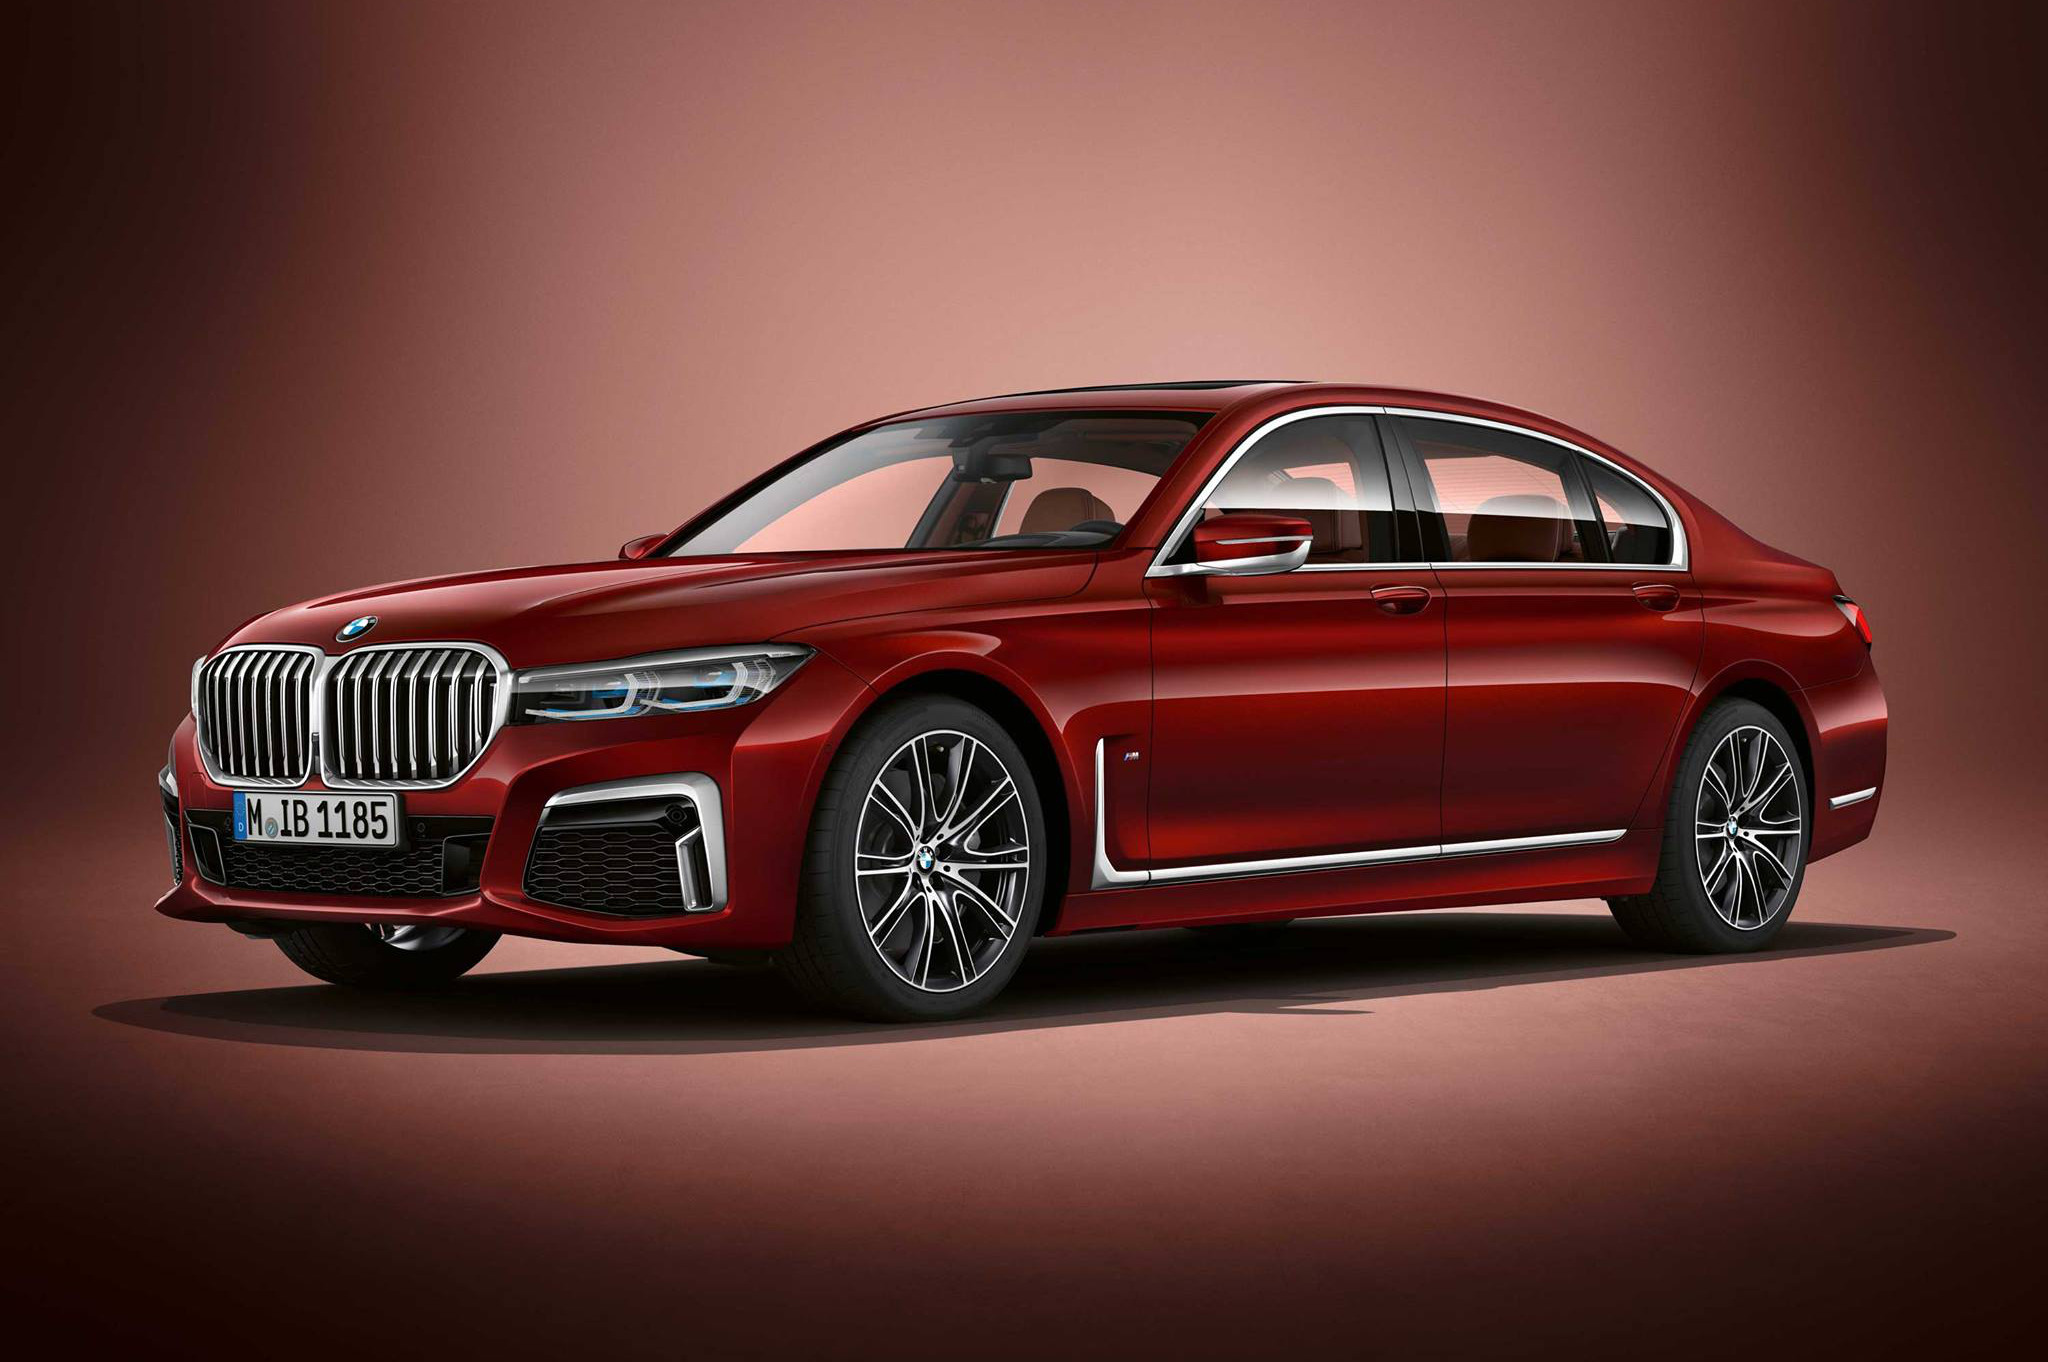 Bmw Individual M760li Facelift 2019 In Aventurine Red Co